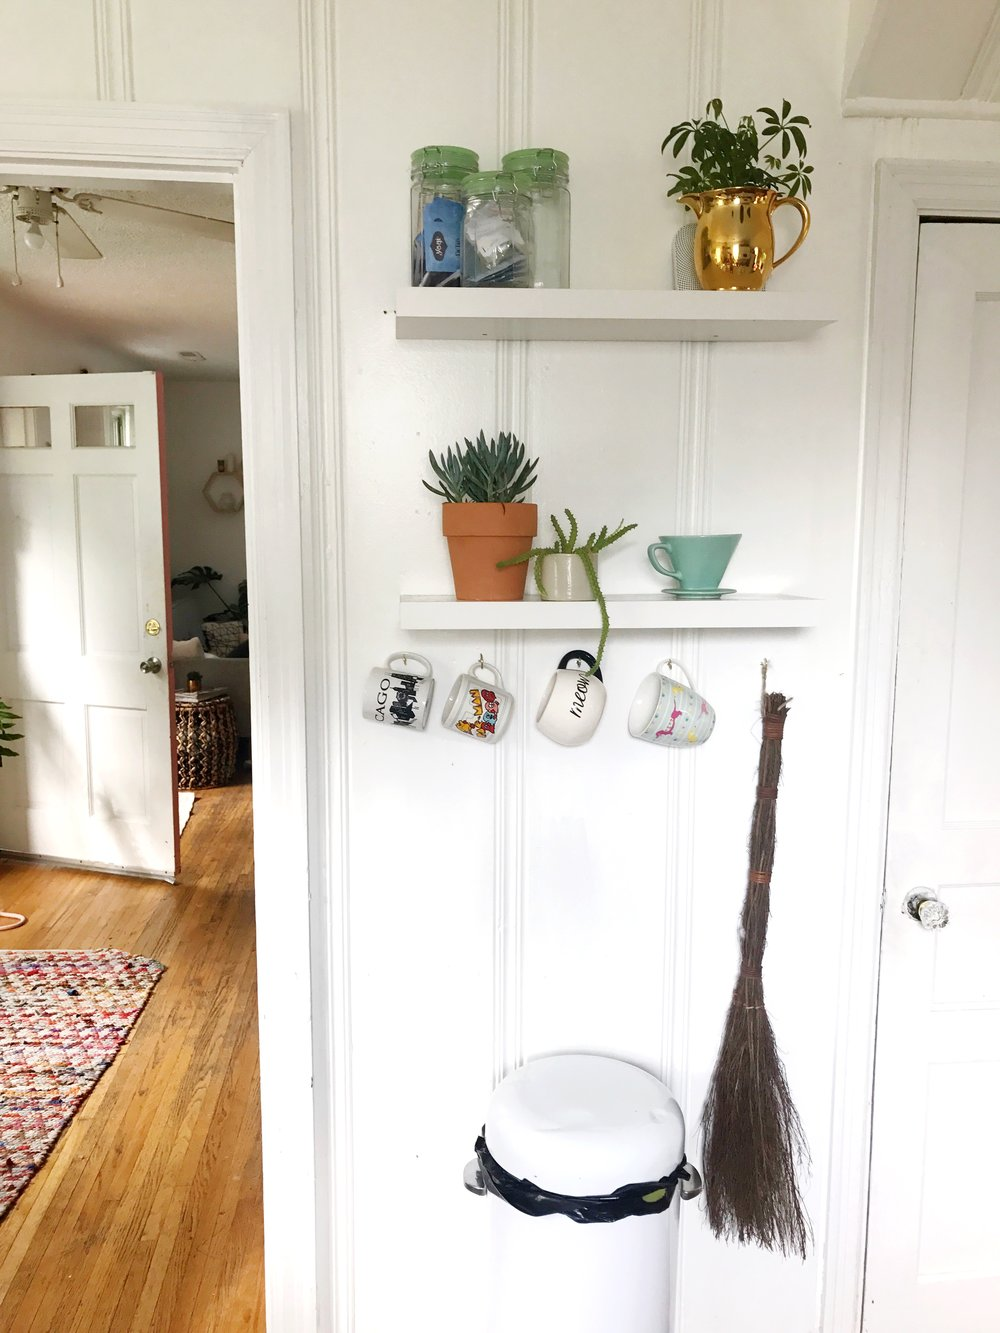 We added these floating shelves a few months ago. They are the perfect place for plants and coffee accessories :)